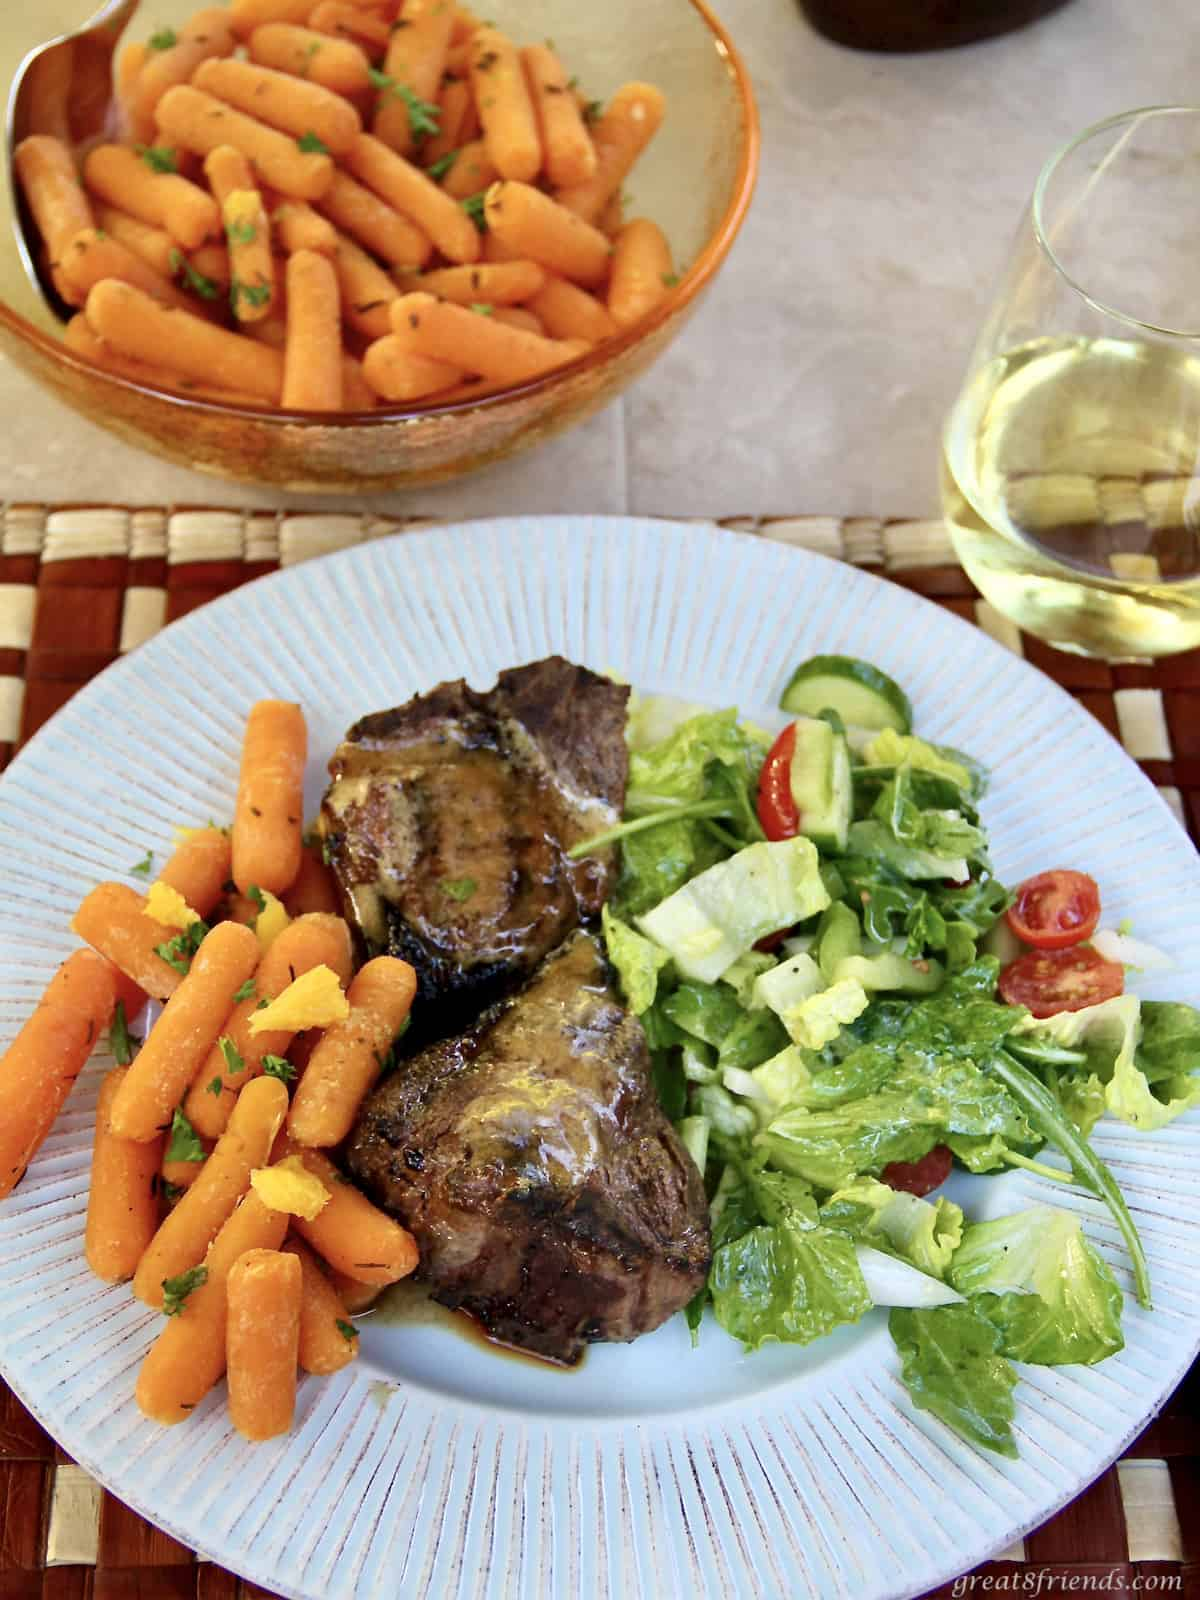 A plate with carrots, lamb chops and a green salad with a bowl of carrots and a glass of wine on the side.